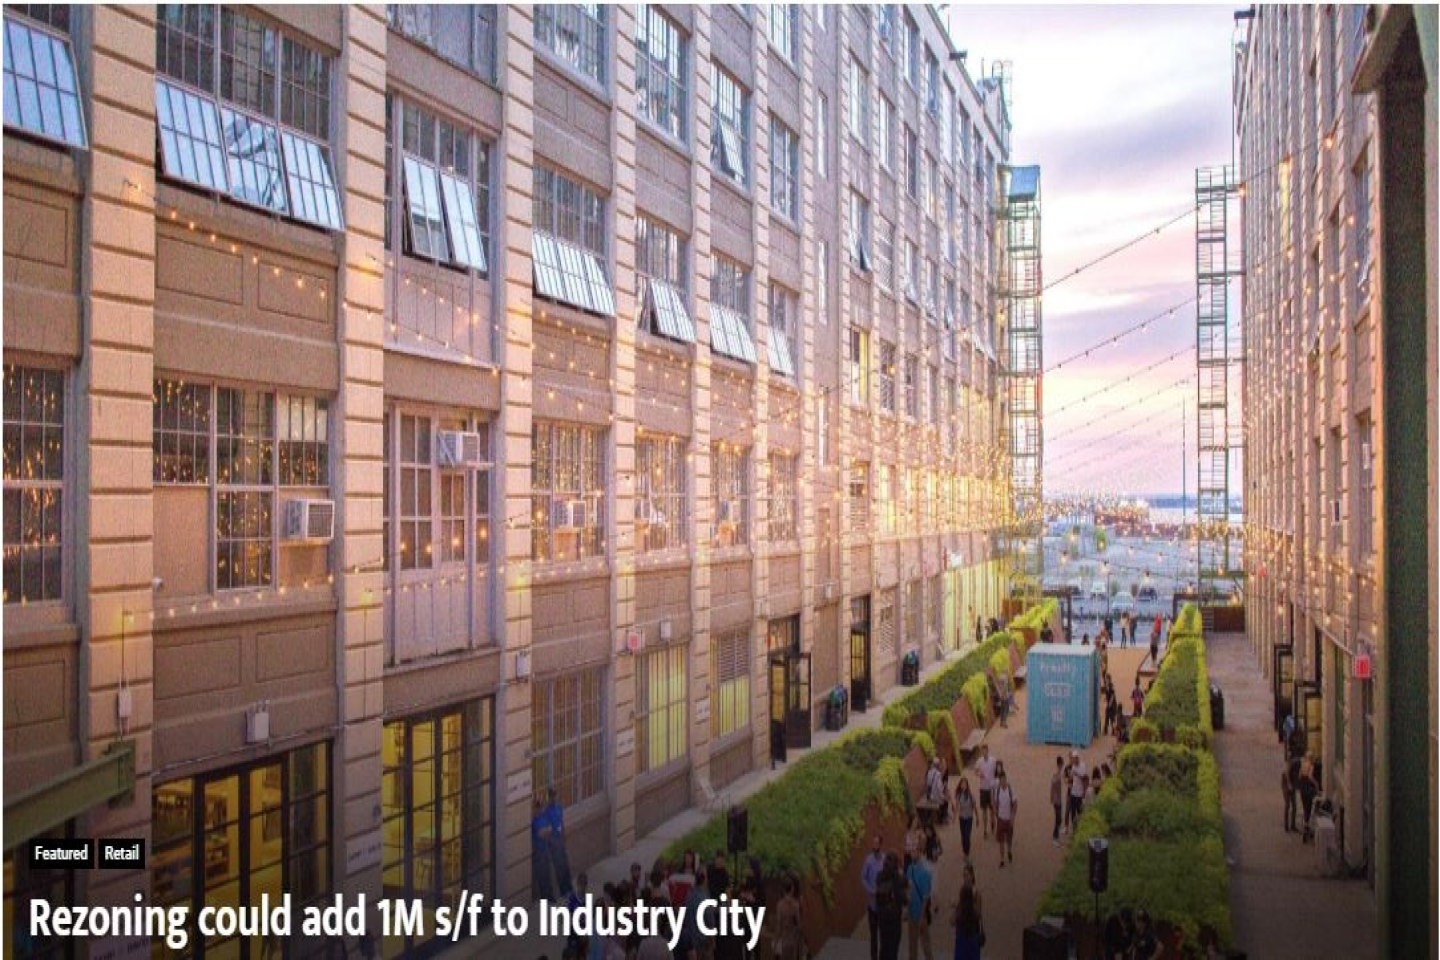 Rezoning Could Add 1M S/F To Industry City - Real Estate Weekly featuring Jakub Nowak